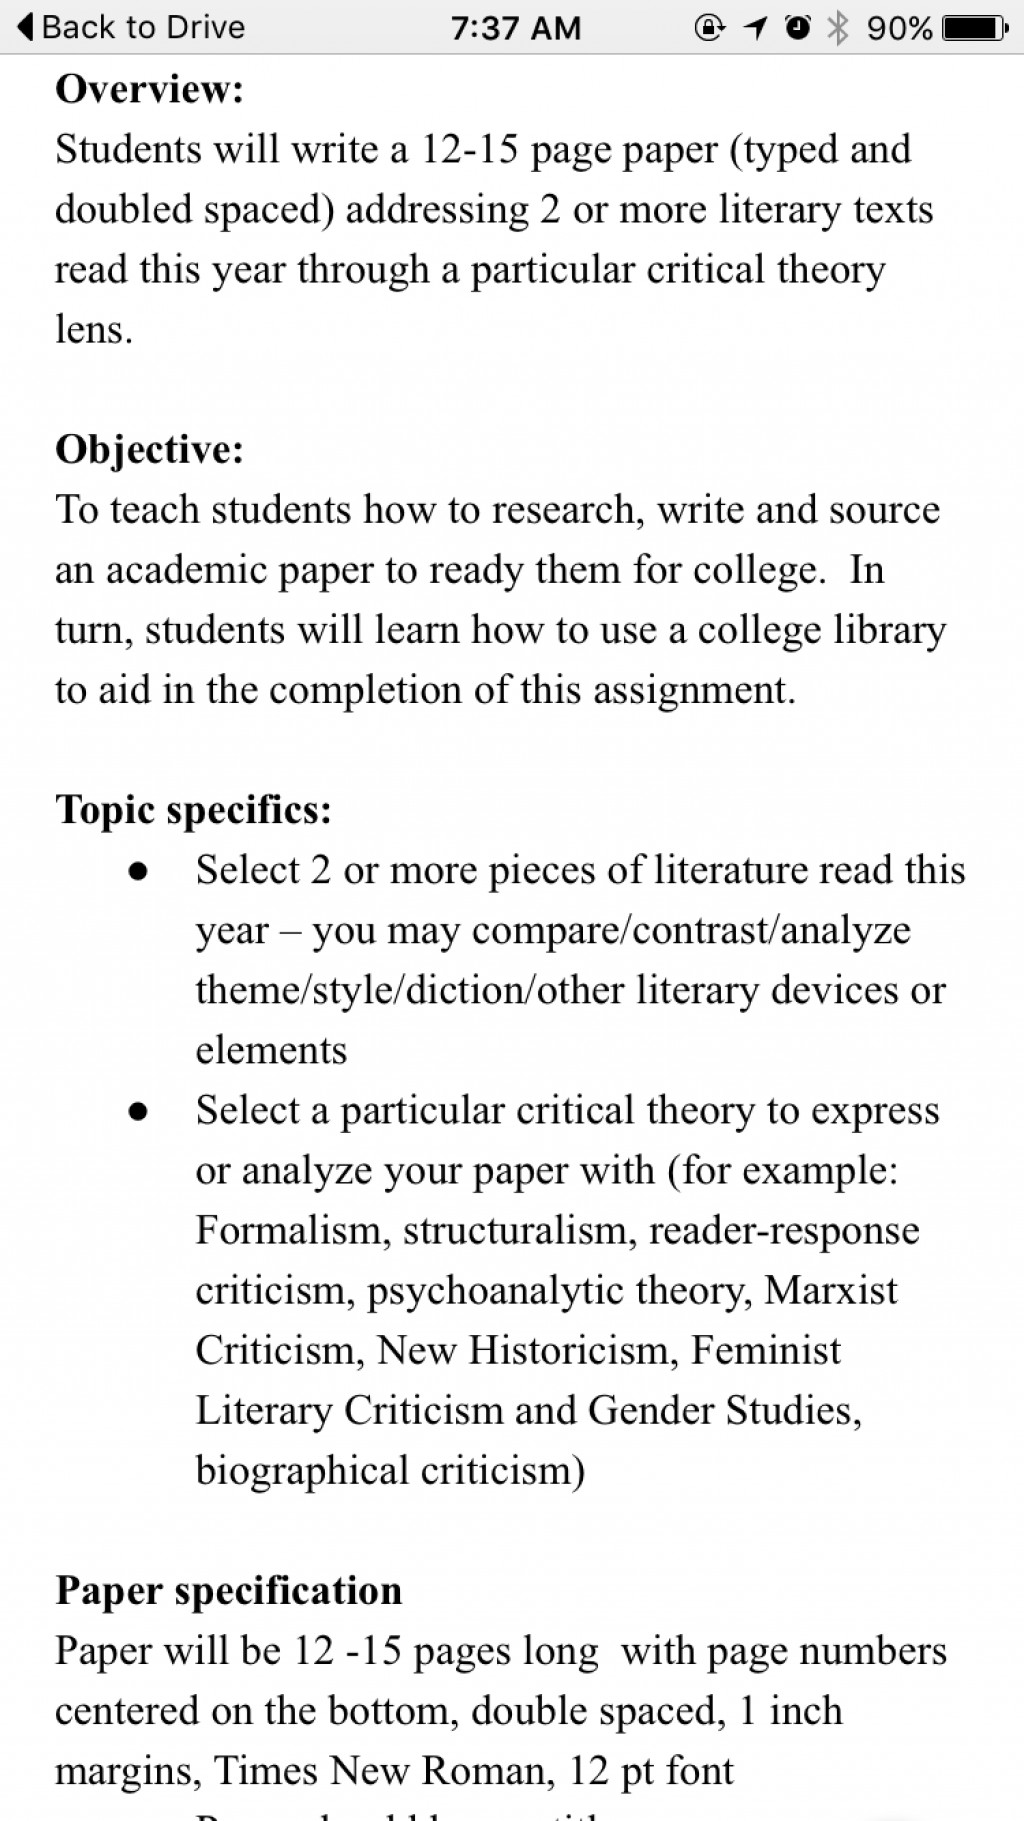 010 College Education Research Paper Topics Research20paper20image Singular Large